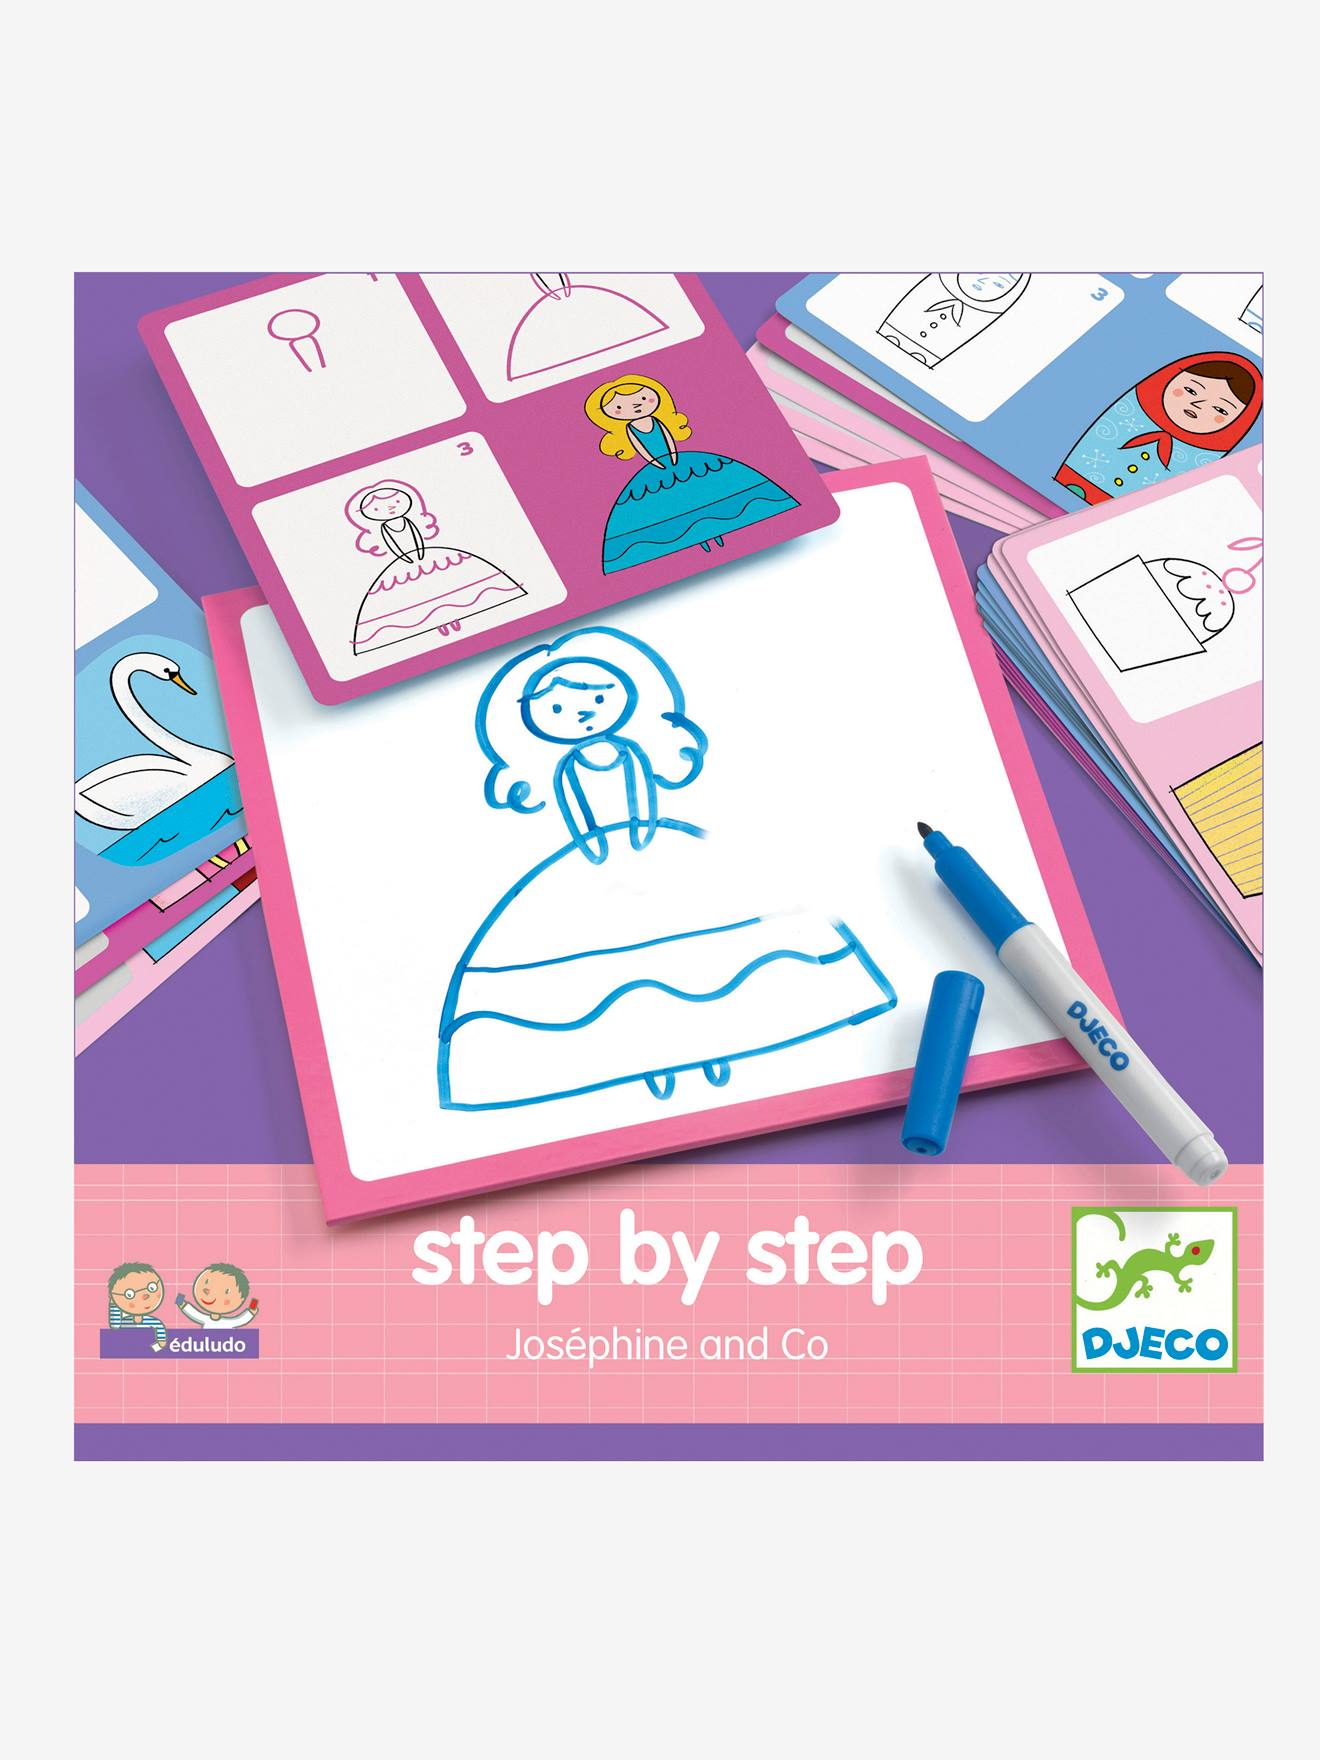 Step by step Joséphine DJECO multicolore